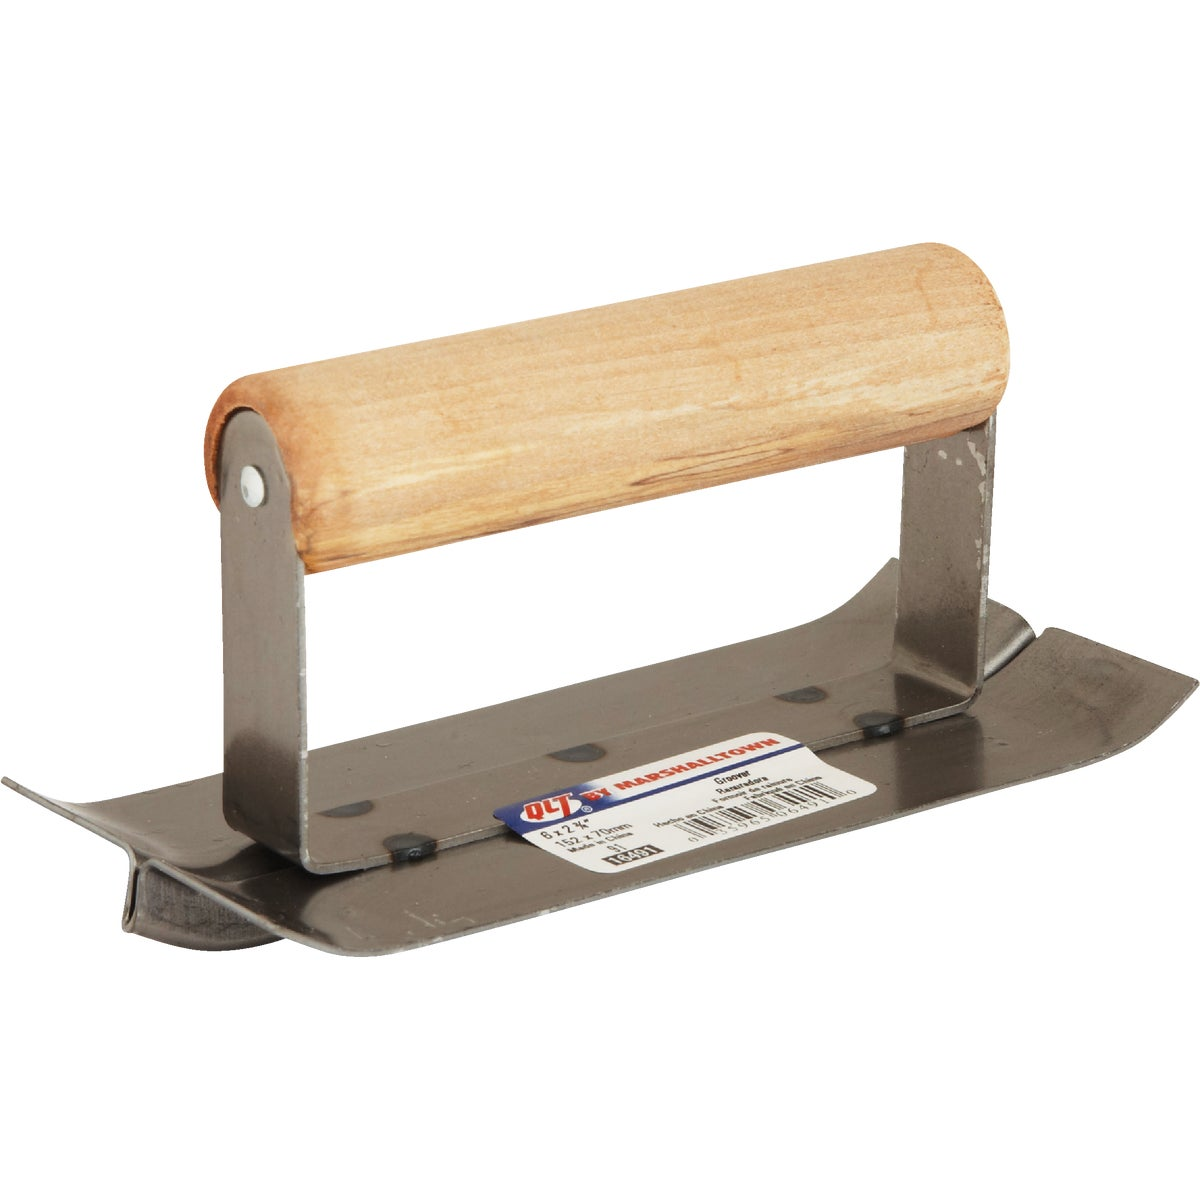 CEMENT GROOVER - 16491 by Marshalltown Trowel